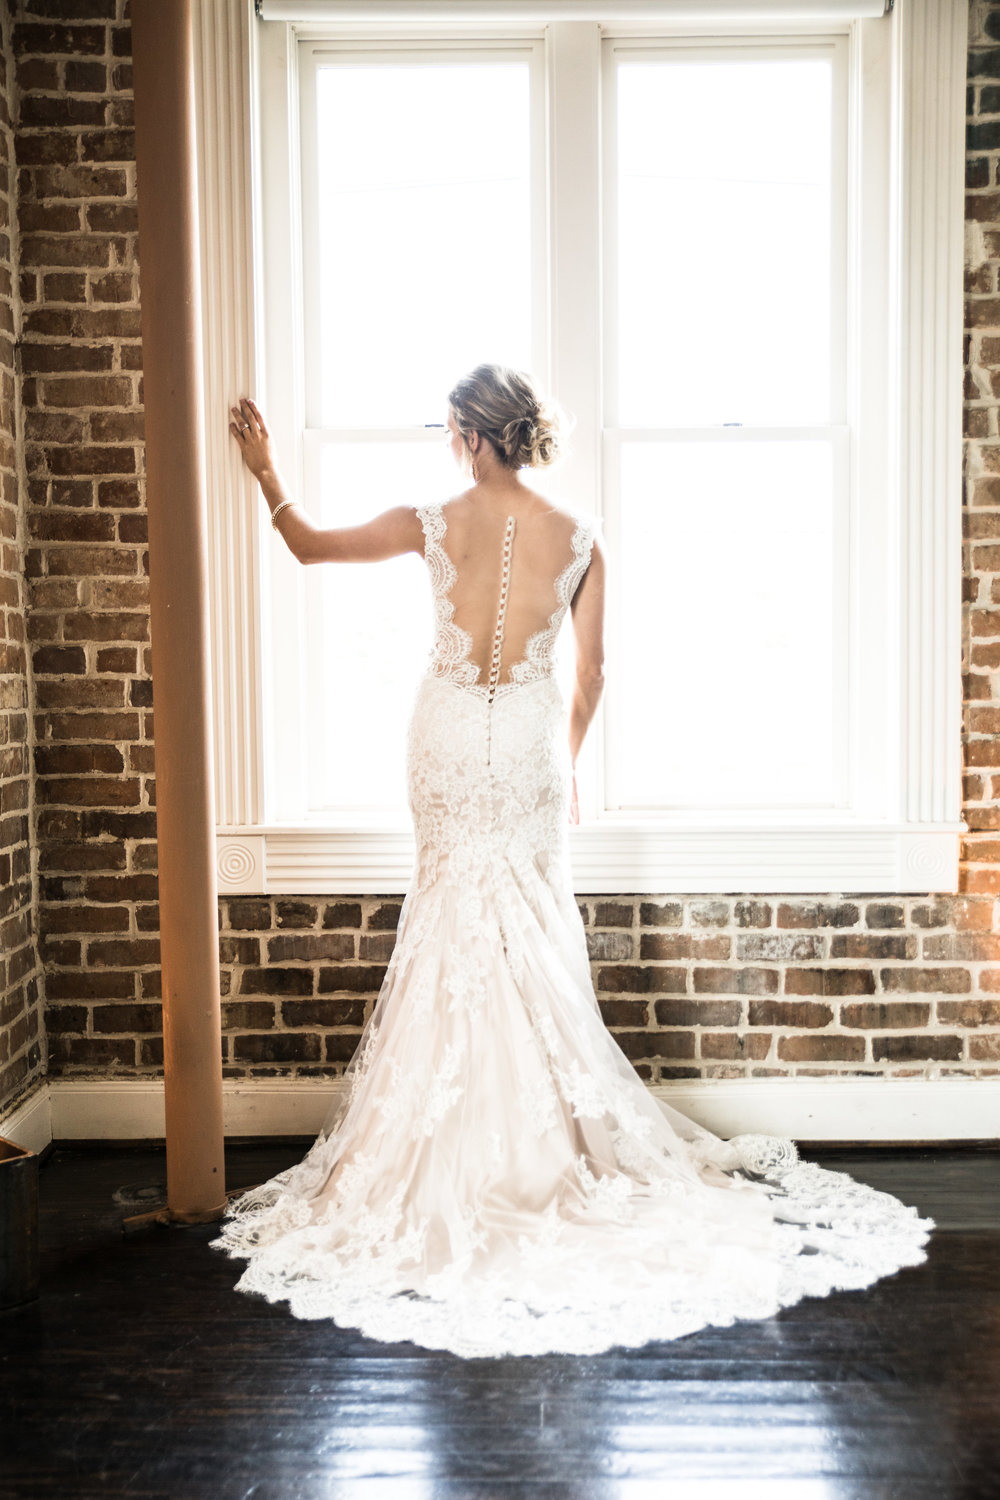 Swooning over this breathtaking bridal portrait!